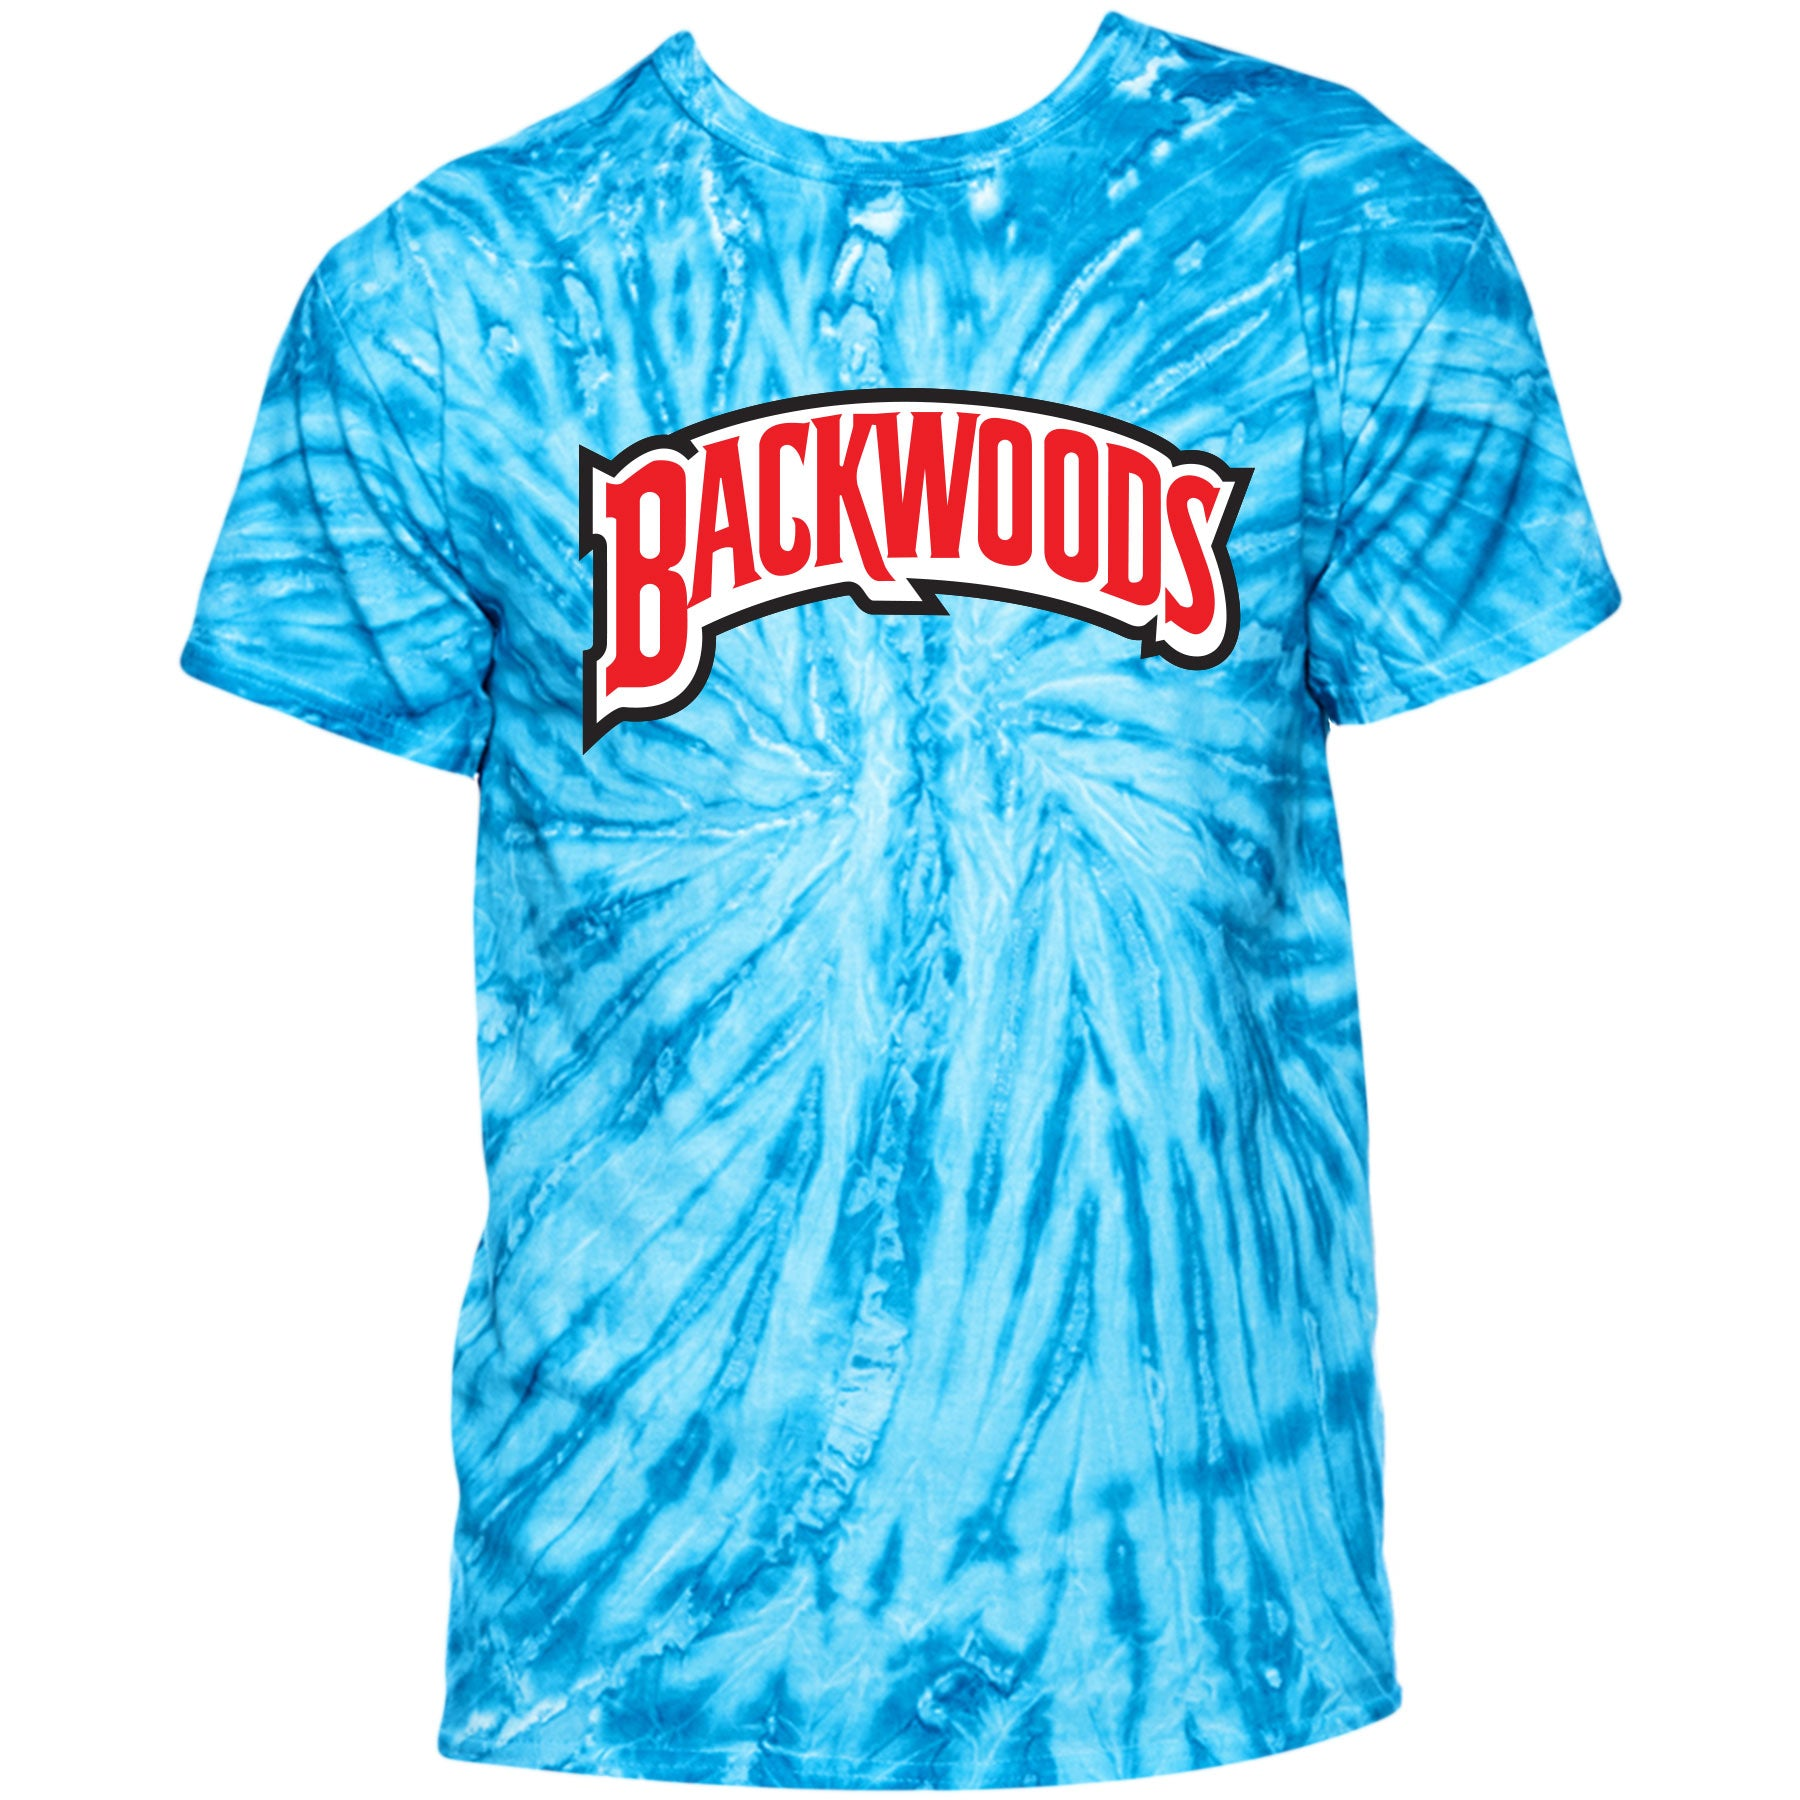 a51f1adfef2 Printed on the front of the Backwoods Vanilla Blue Tie-Dye Swirl T-Shirt